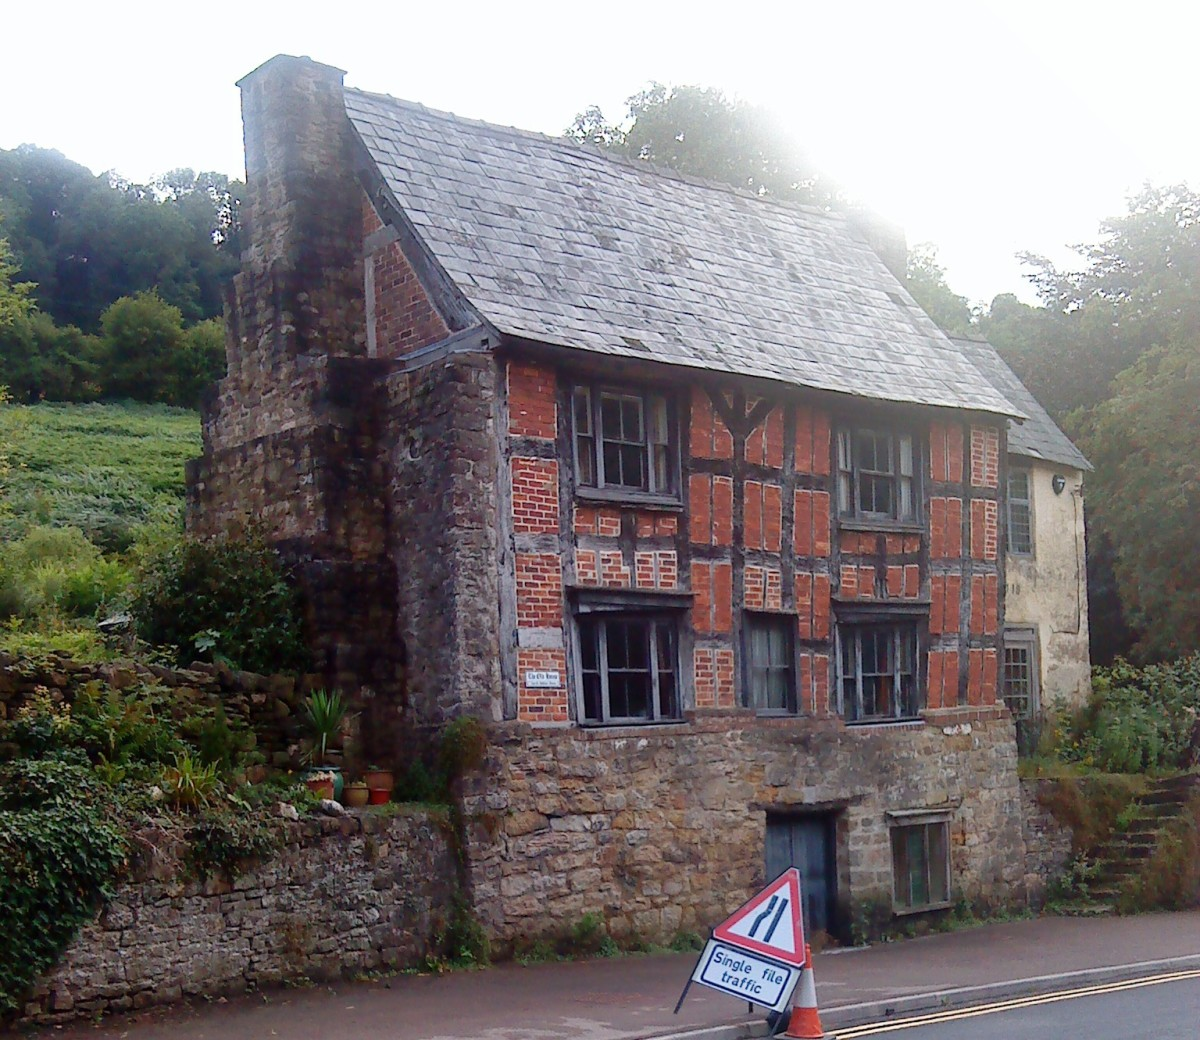 The Old House or Sarah Siddon's Cottage, Lower Lydbrook, Gloucestershire